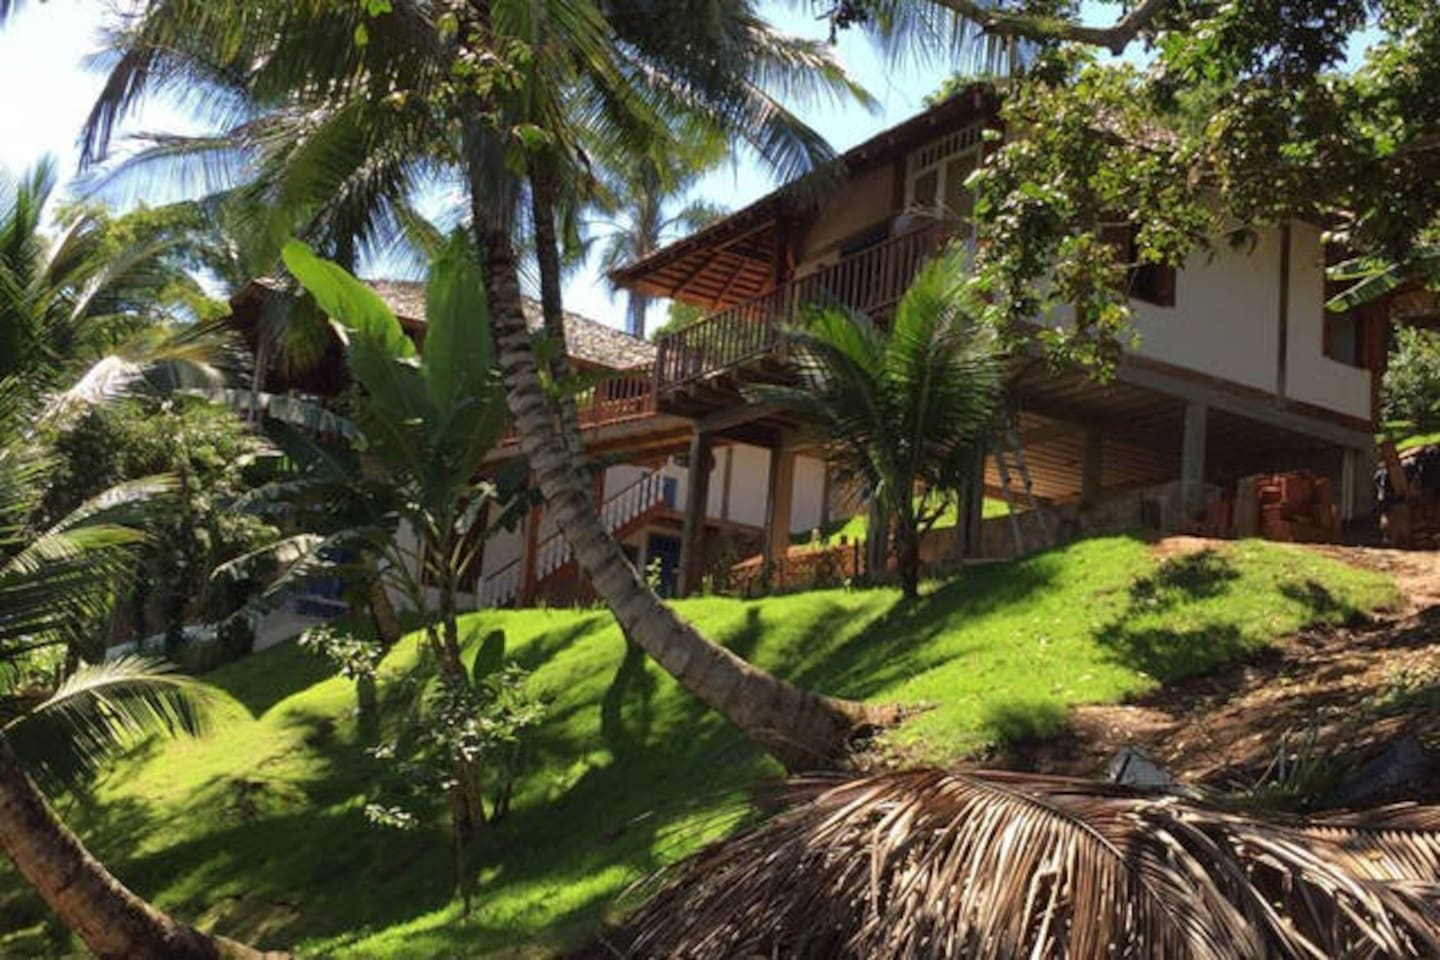 House and Coconut Trees